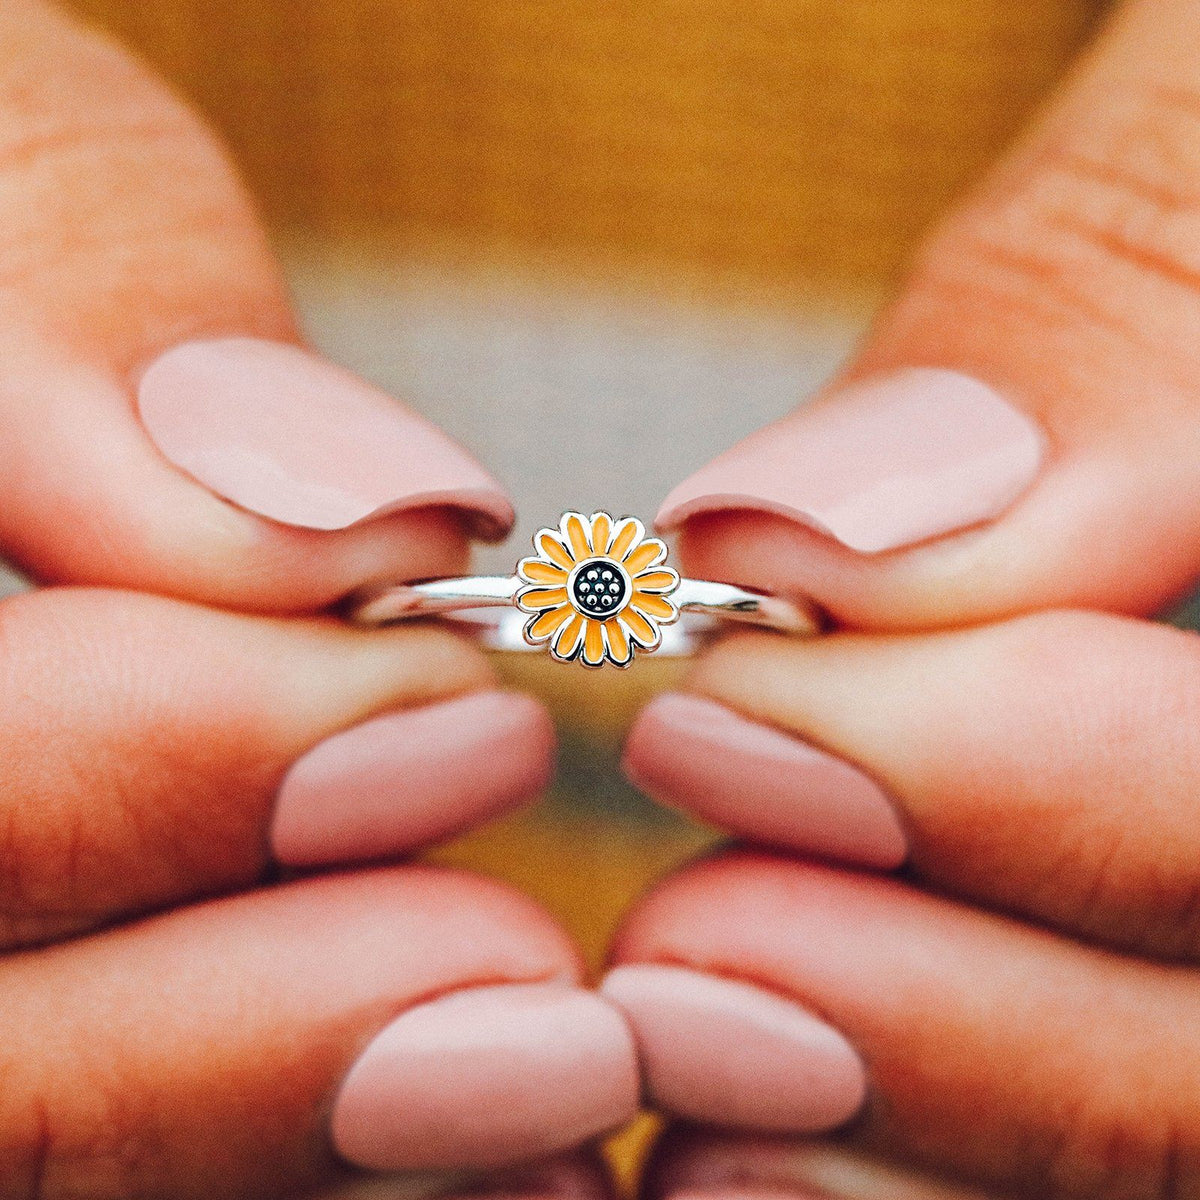 Enamel Sunflower Ring 3